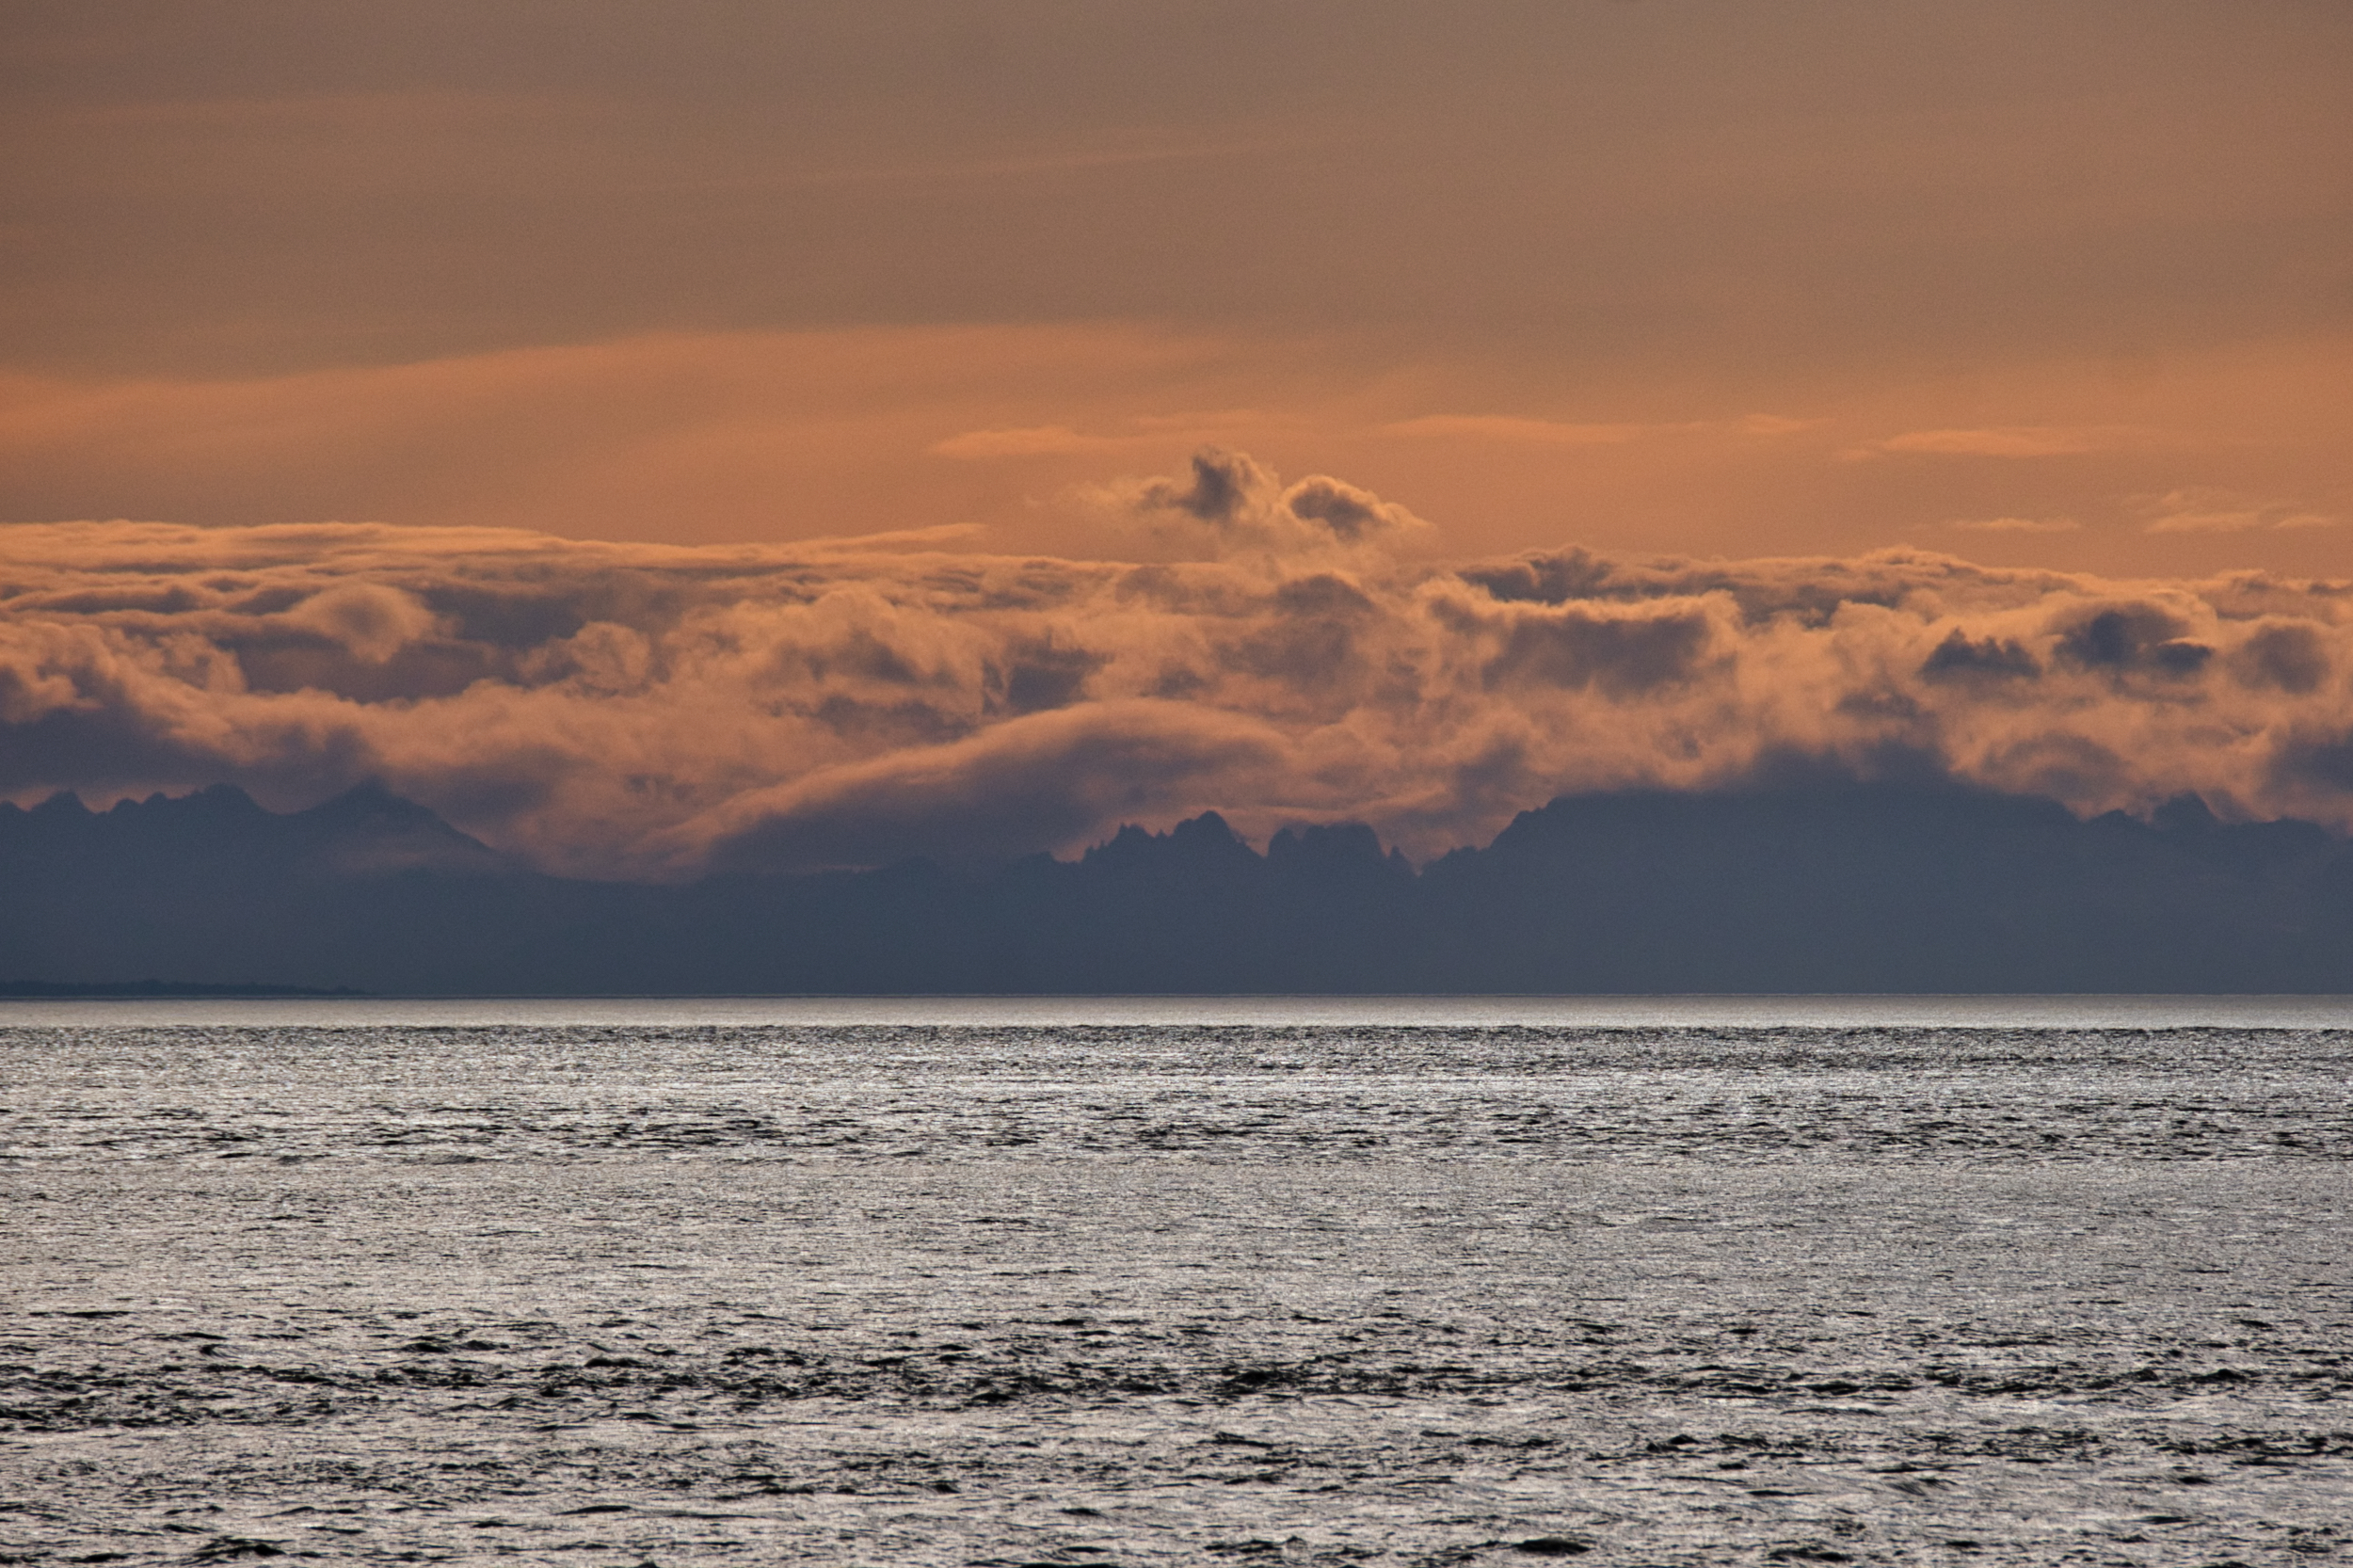 Cloud banks and faint mountains across Cook Inlet from Anchorage